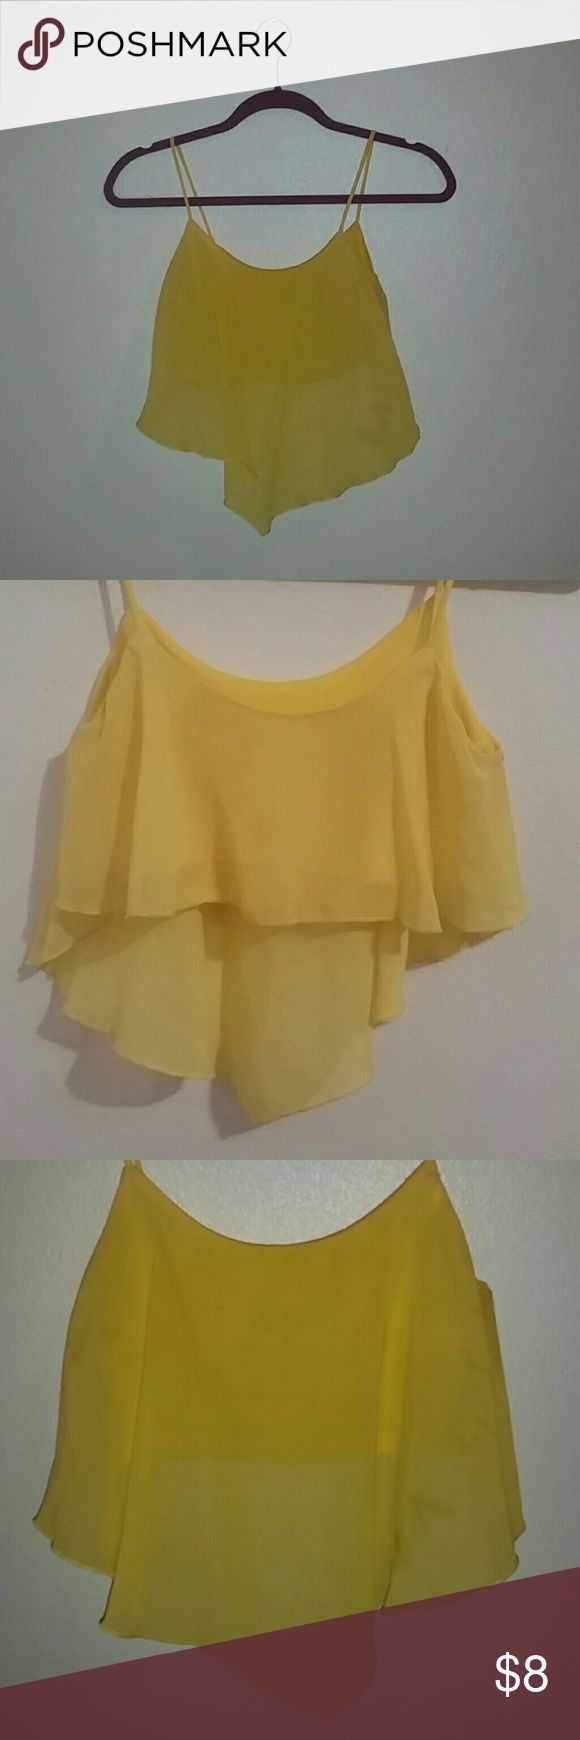 Yellow Crop Top This Crop Top is like new. Just used two times. 5.7.9 Tops Crop Tops